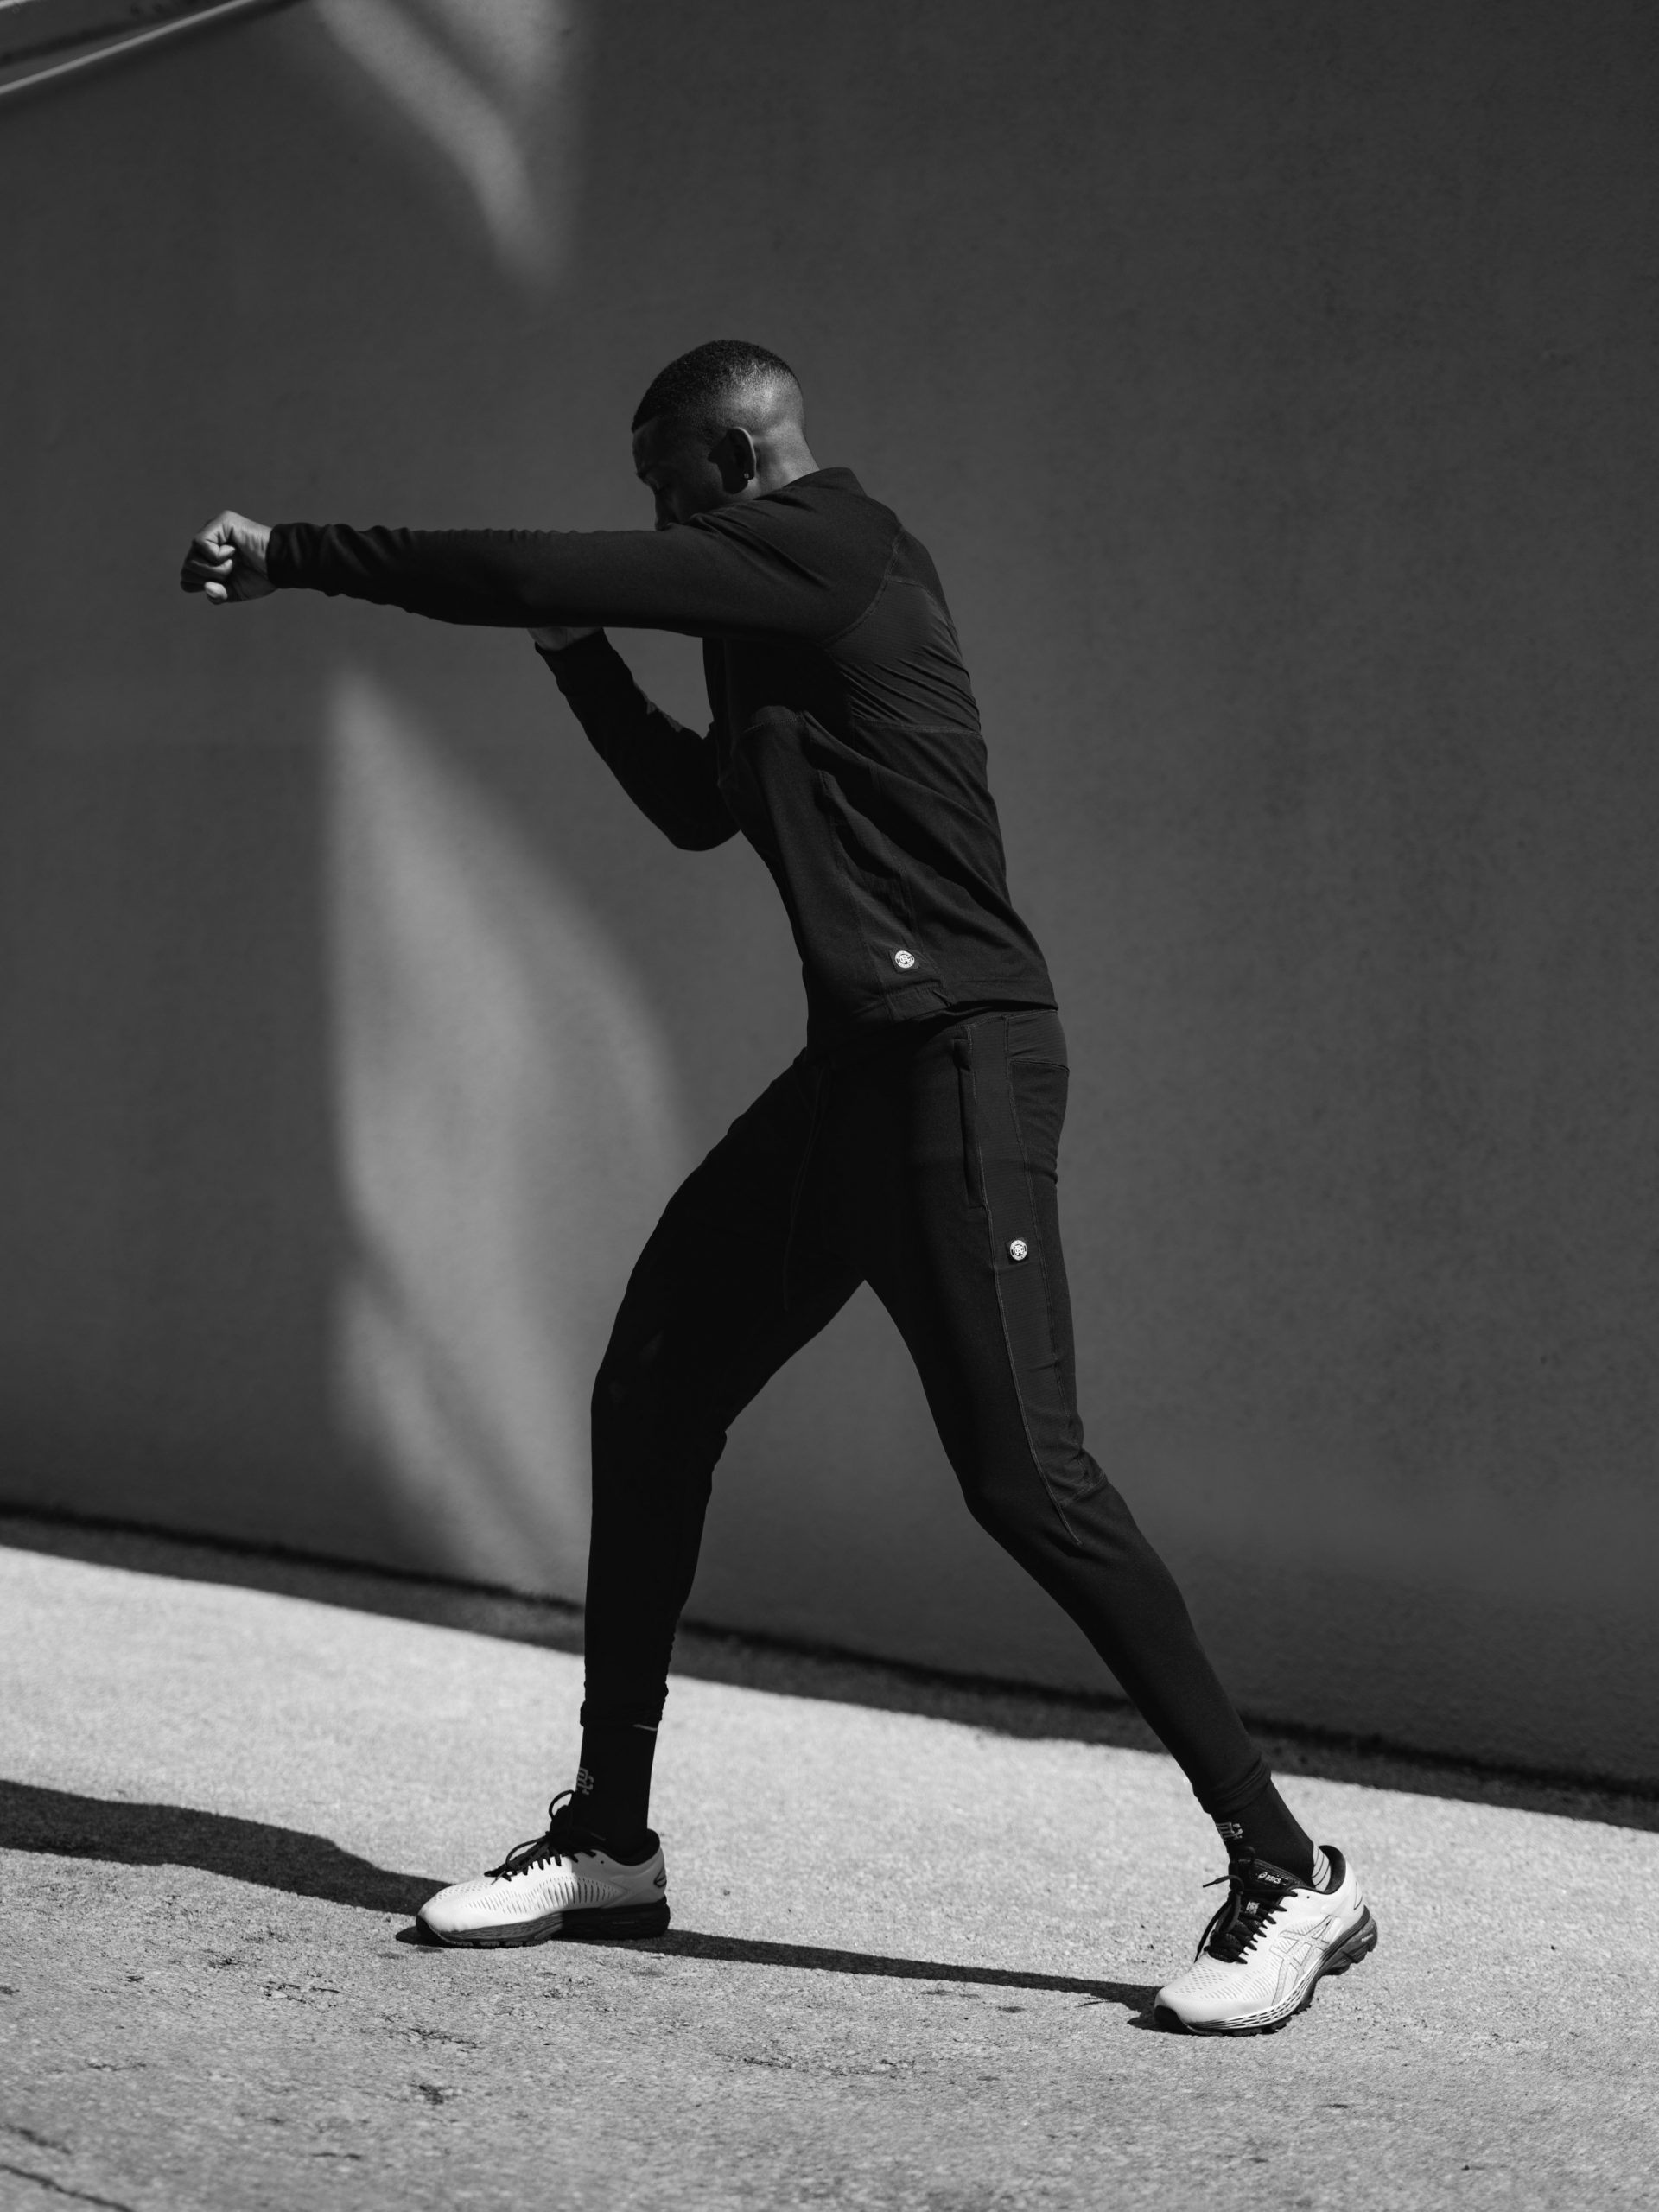 Polartec X Reigning Champ Partner For Advanced Athletic Wear Line